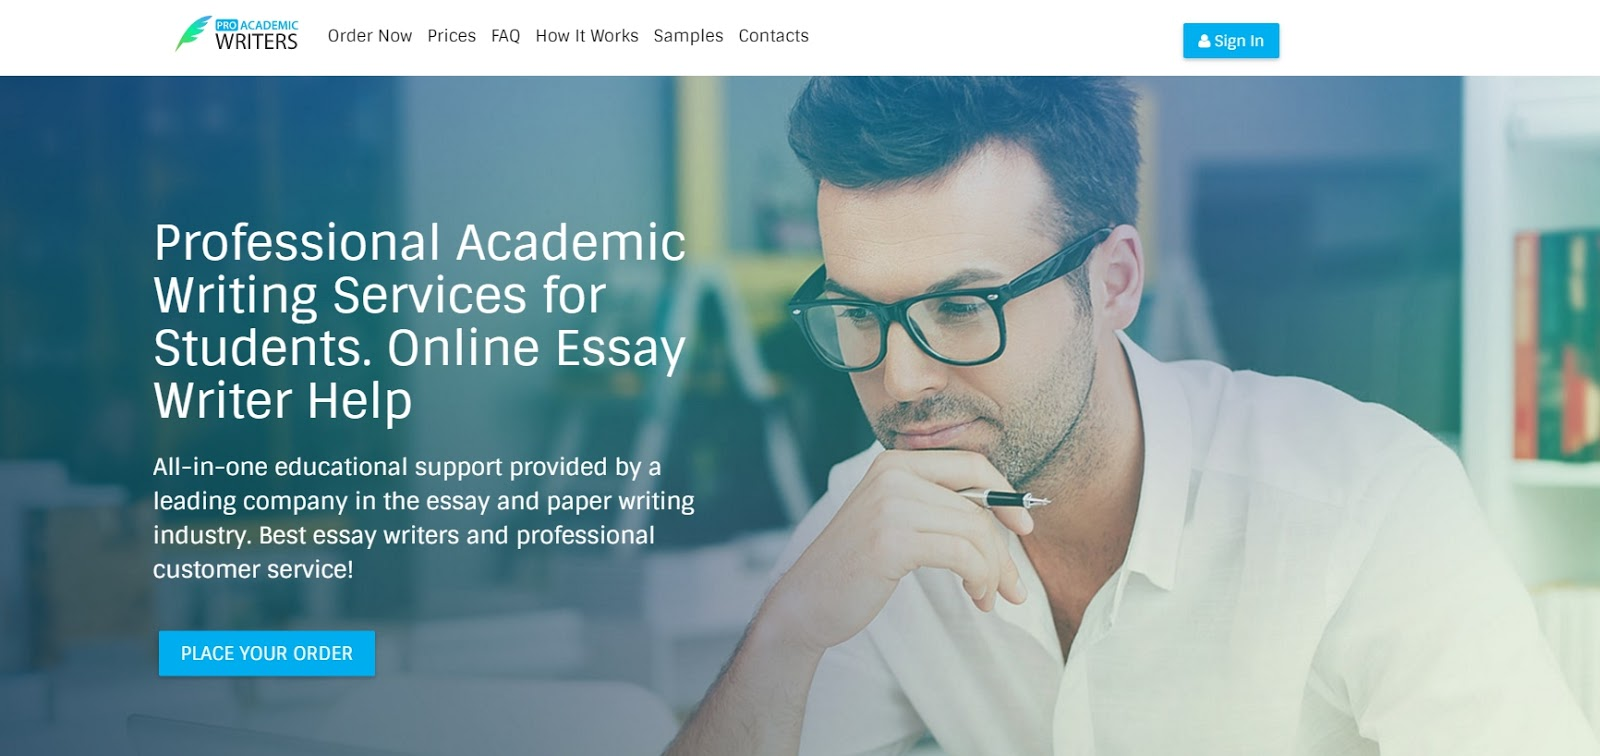 pro academic writers com essay writing service review trusted  pro academic writers com essay writing service review